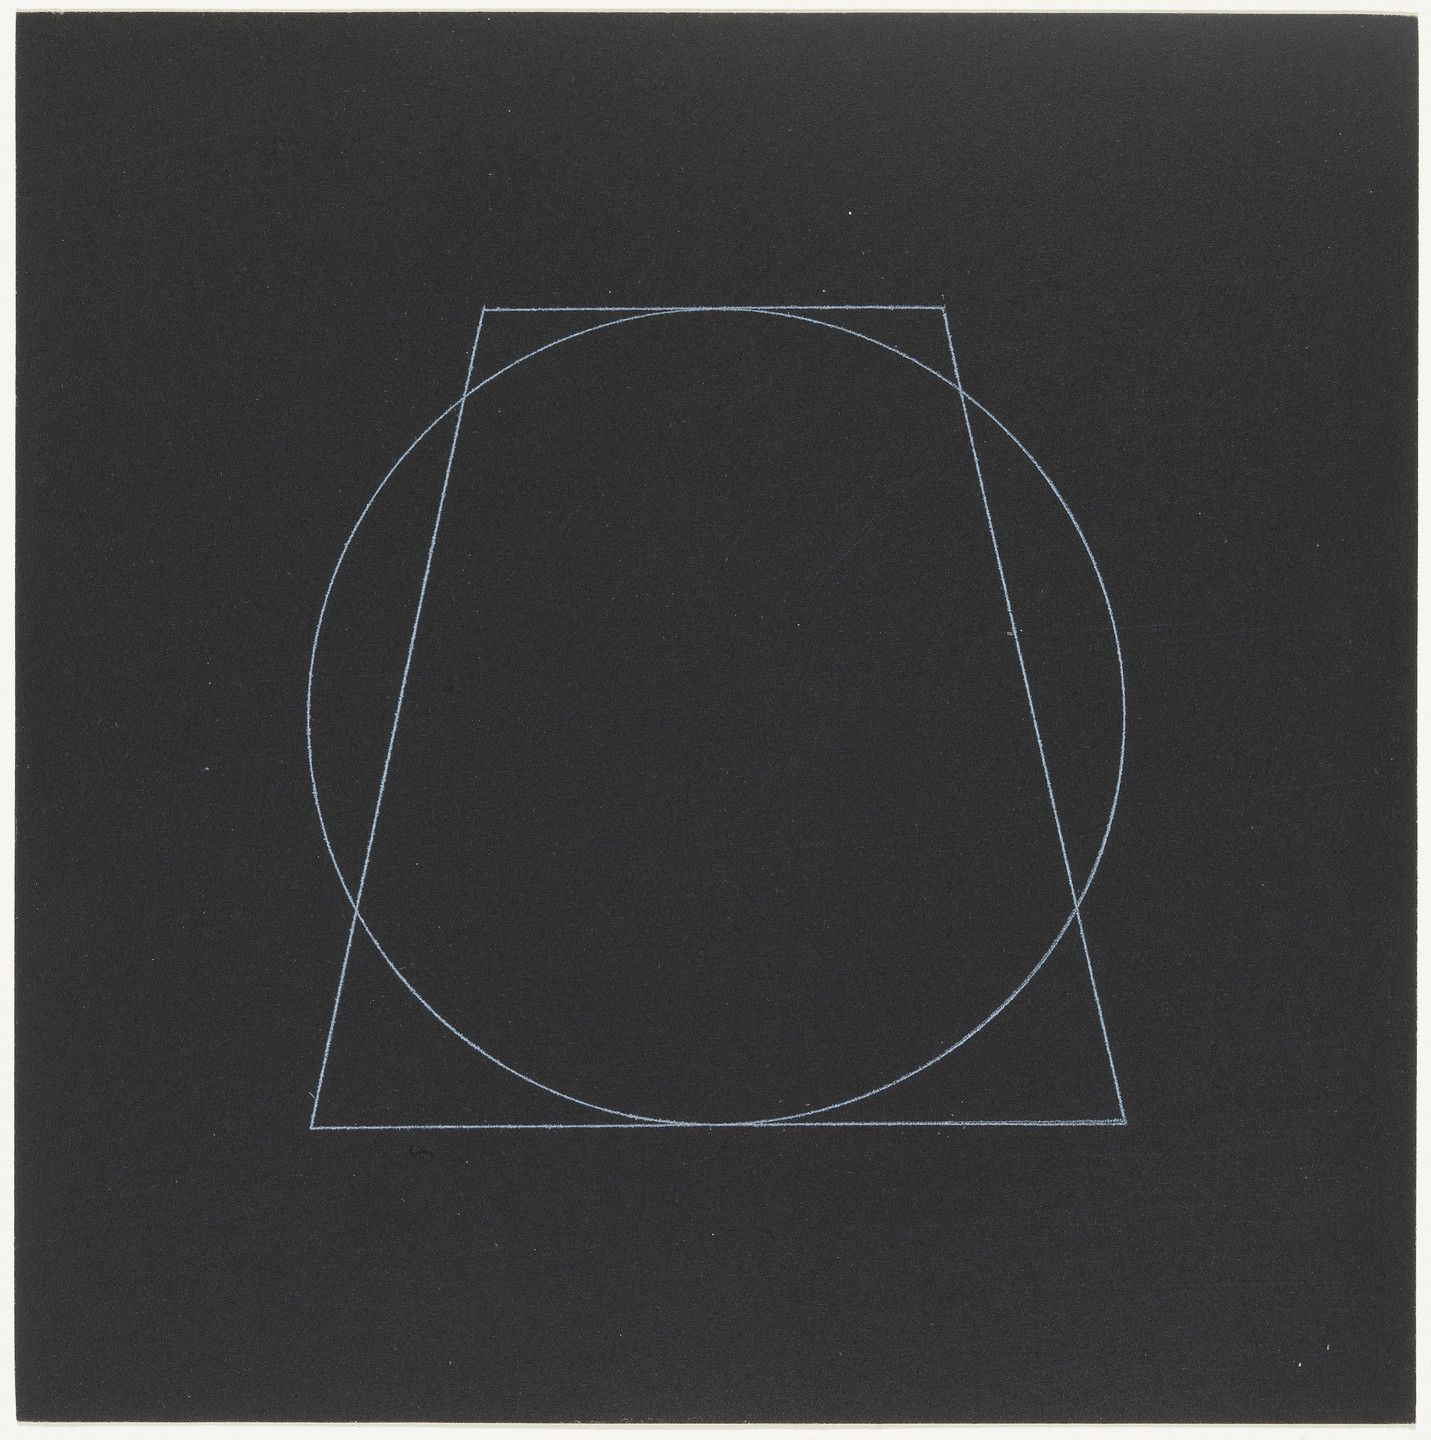 Sol LeWitt. Untitled from Six Geometric Figures, Superimposed in Pairs. 1977